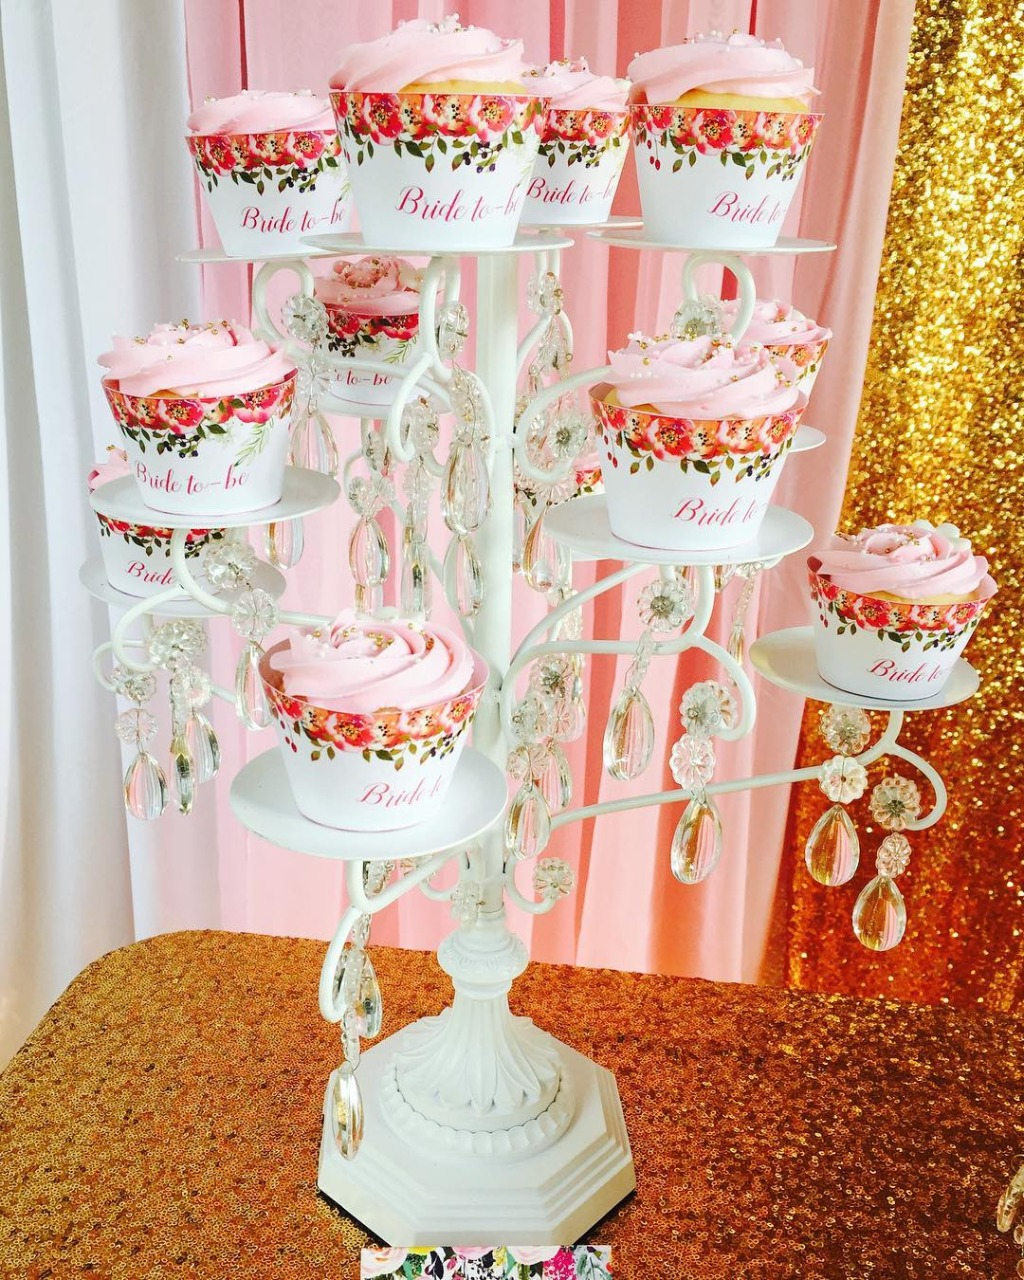 Bridal Shower Sweets by @stephs.sweet.creations with @opulenttreasures White Chandelier Cupcake Stand